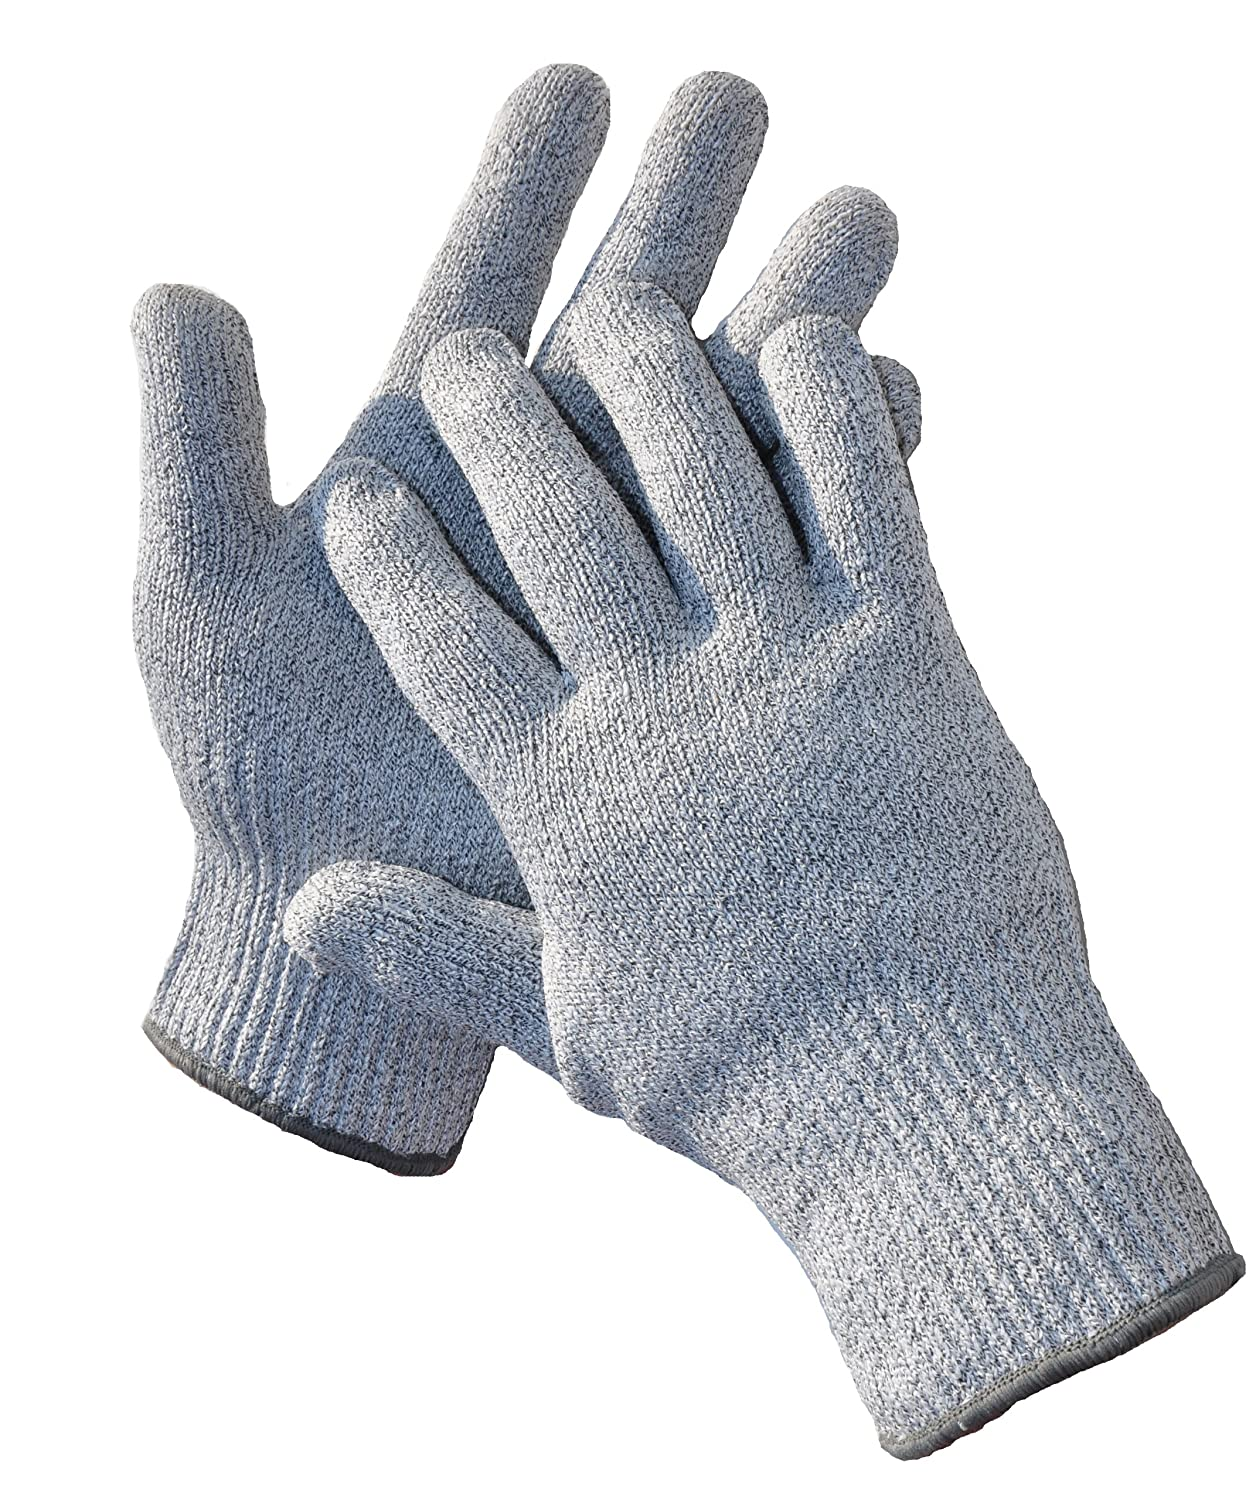 Cut Protection Gloves Cut Resistant Gloves